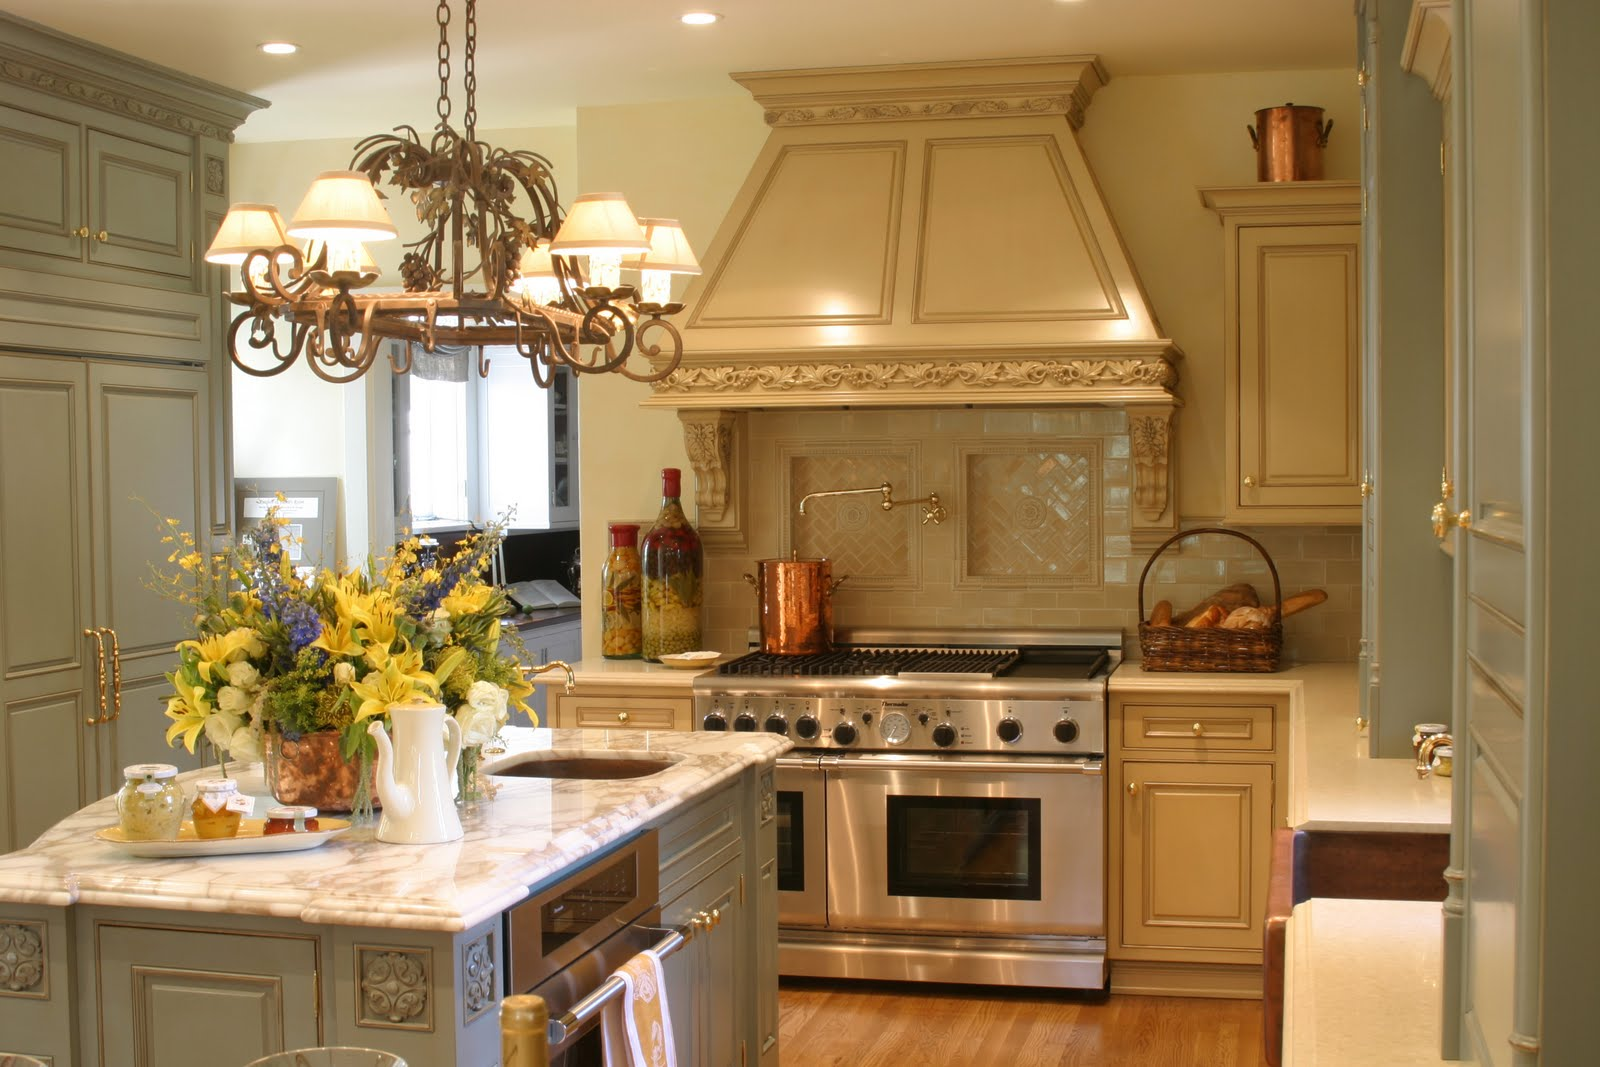 cost of small kitchen remodel kitchen remodel budget cost of small kitchen remodel photo 2